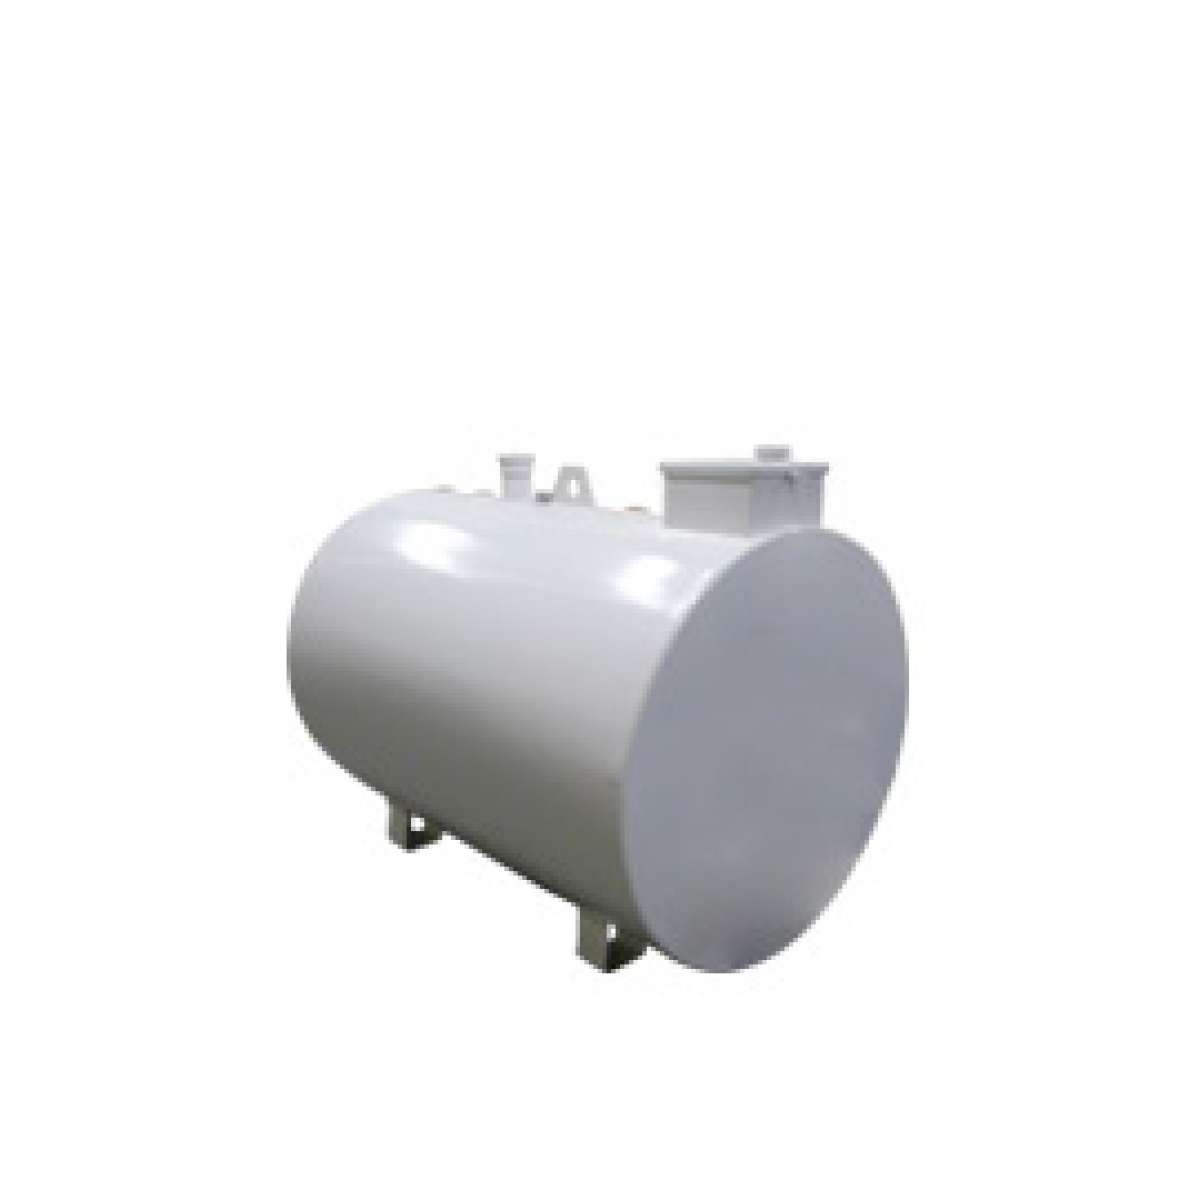 1360 L aboveground used oil storage tank